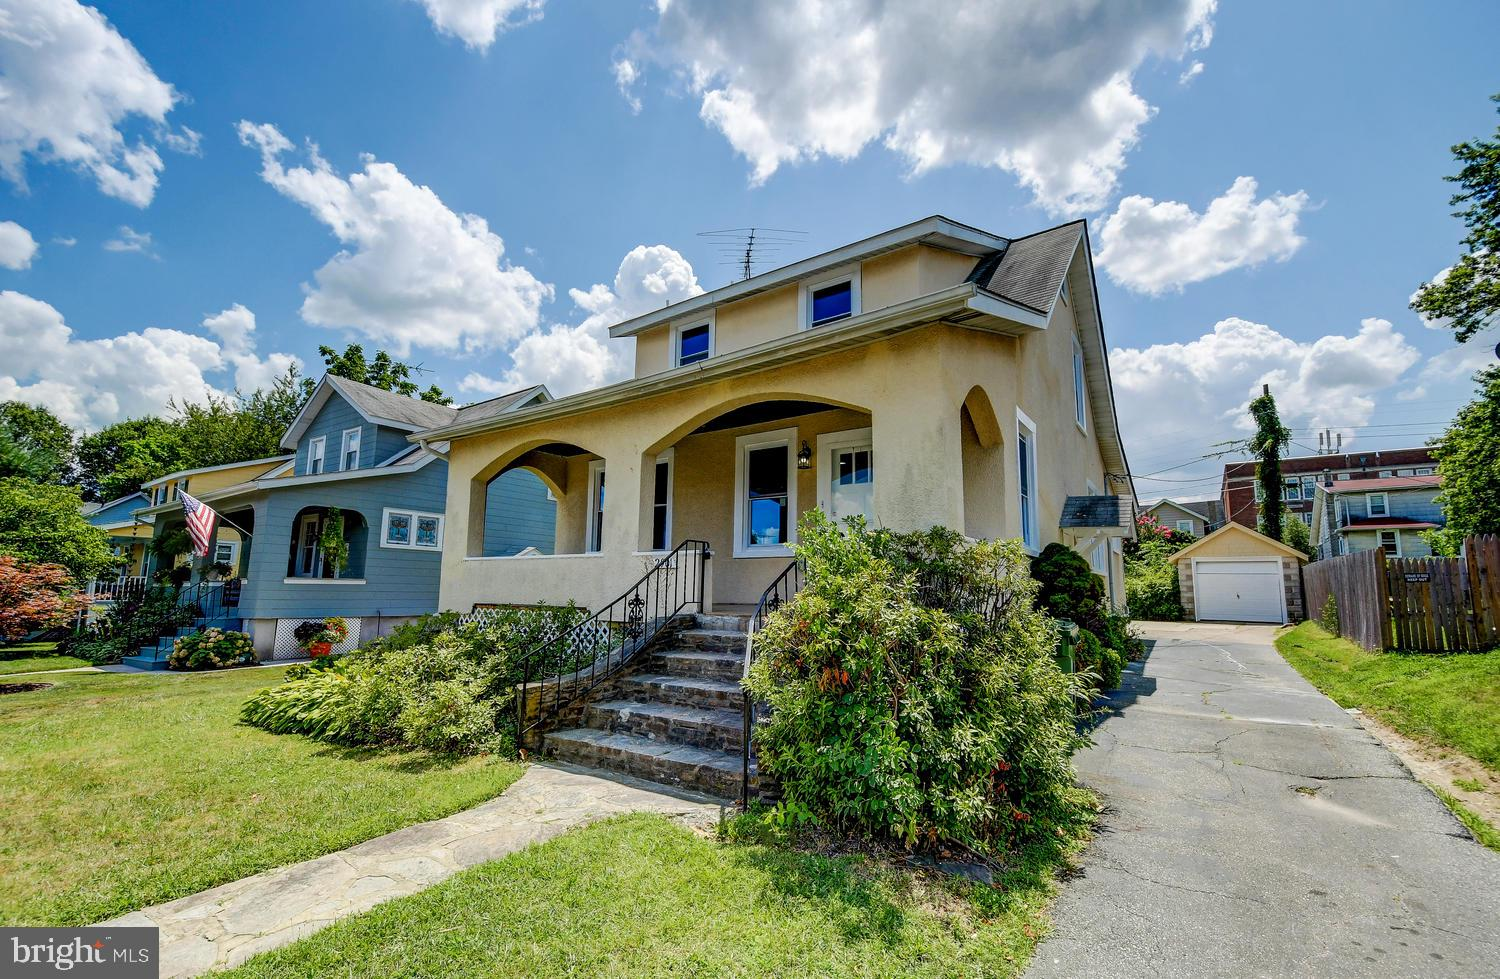 2901 LOUISE AVENUE, BALTIMORE, MD 21214